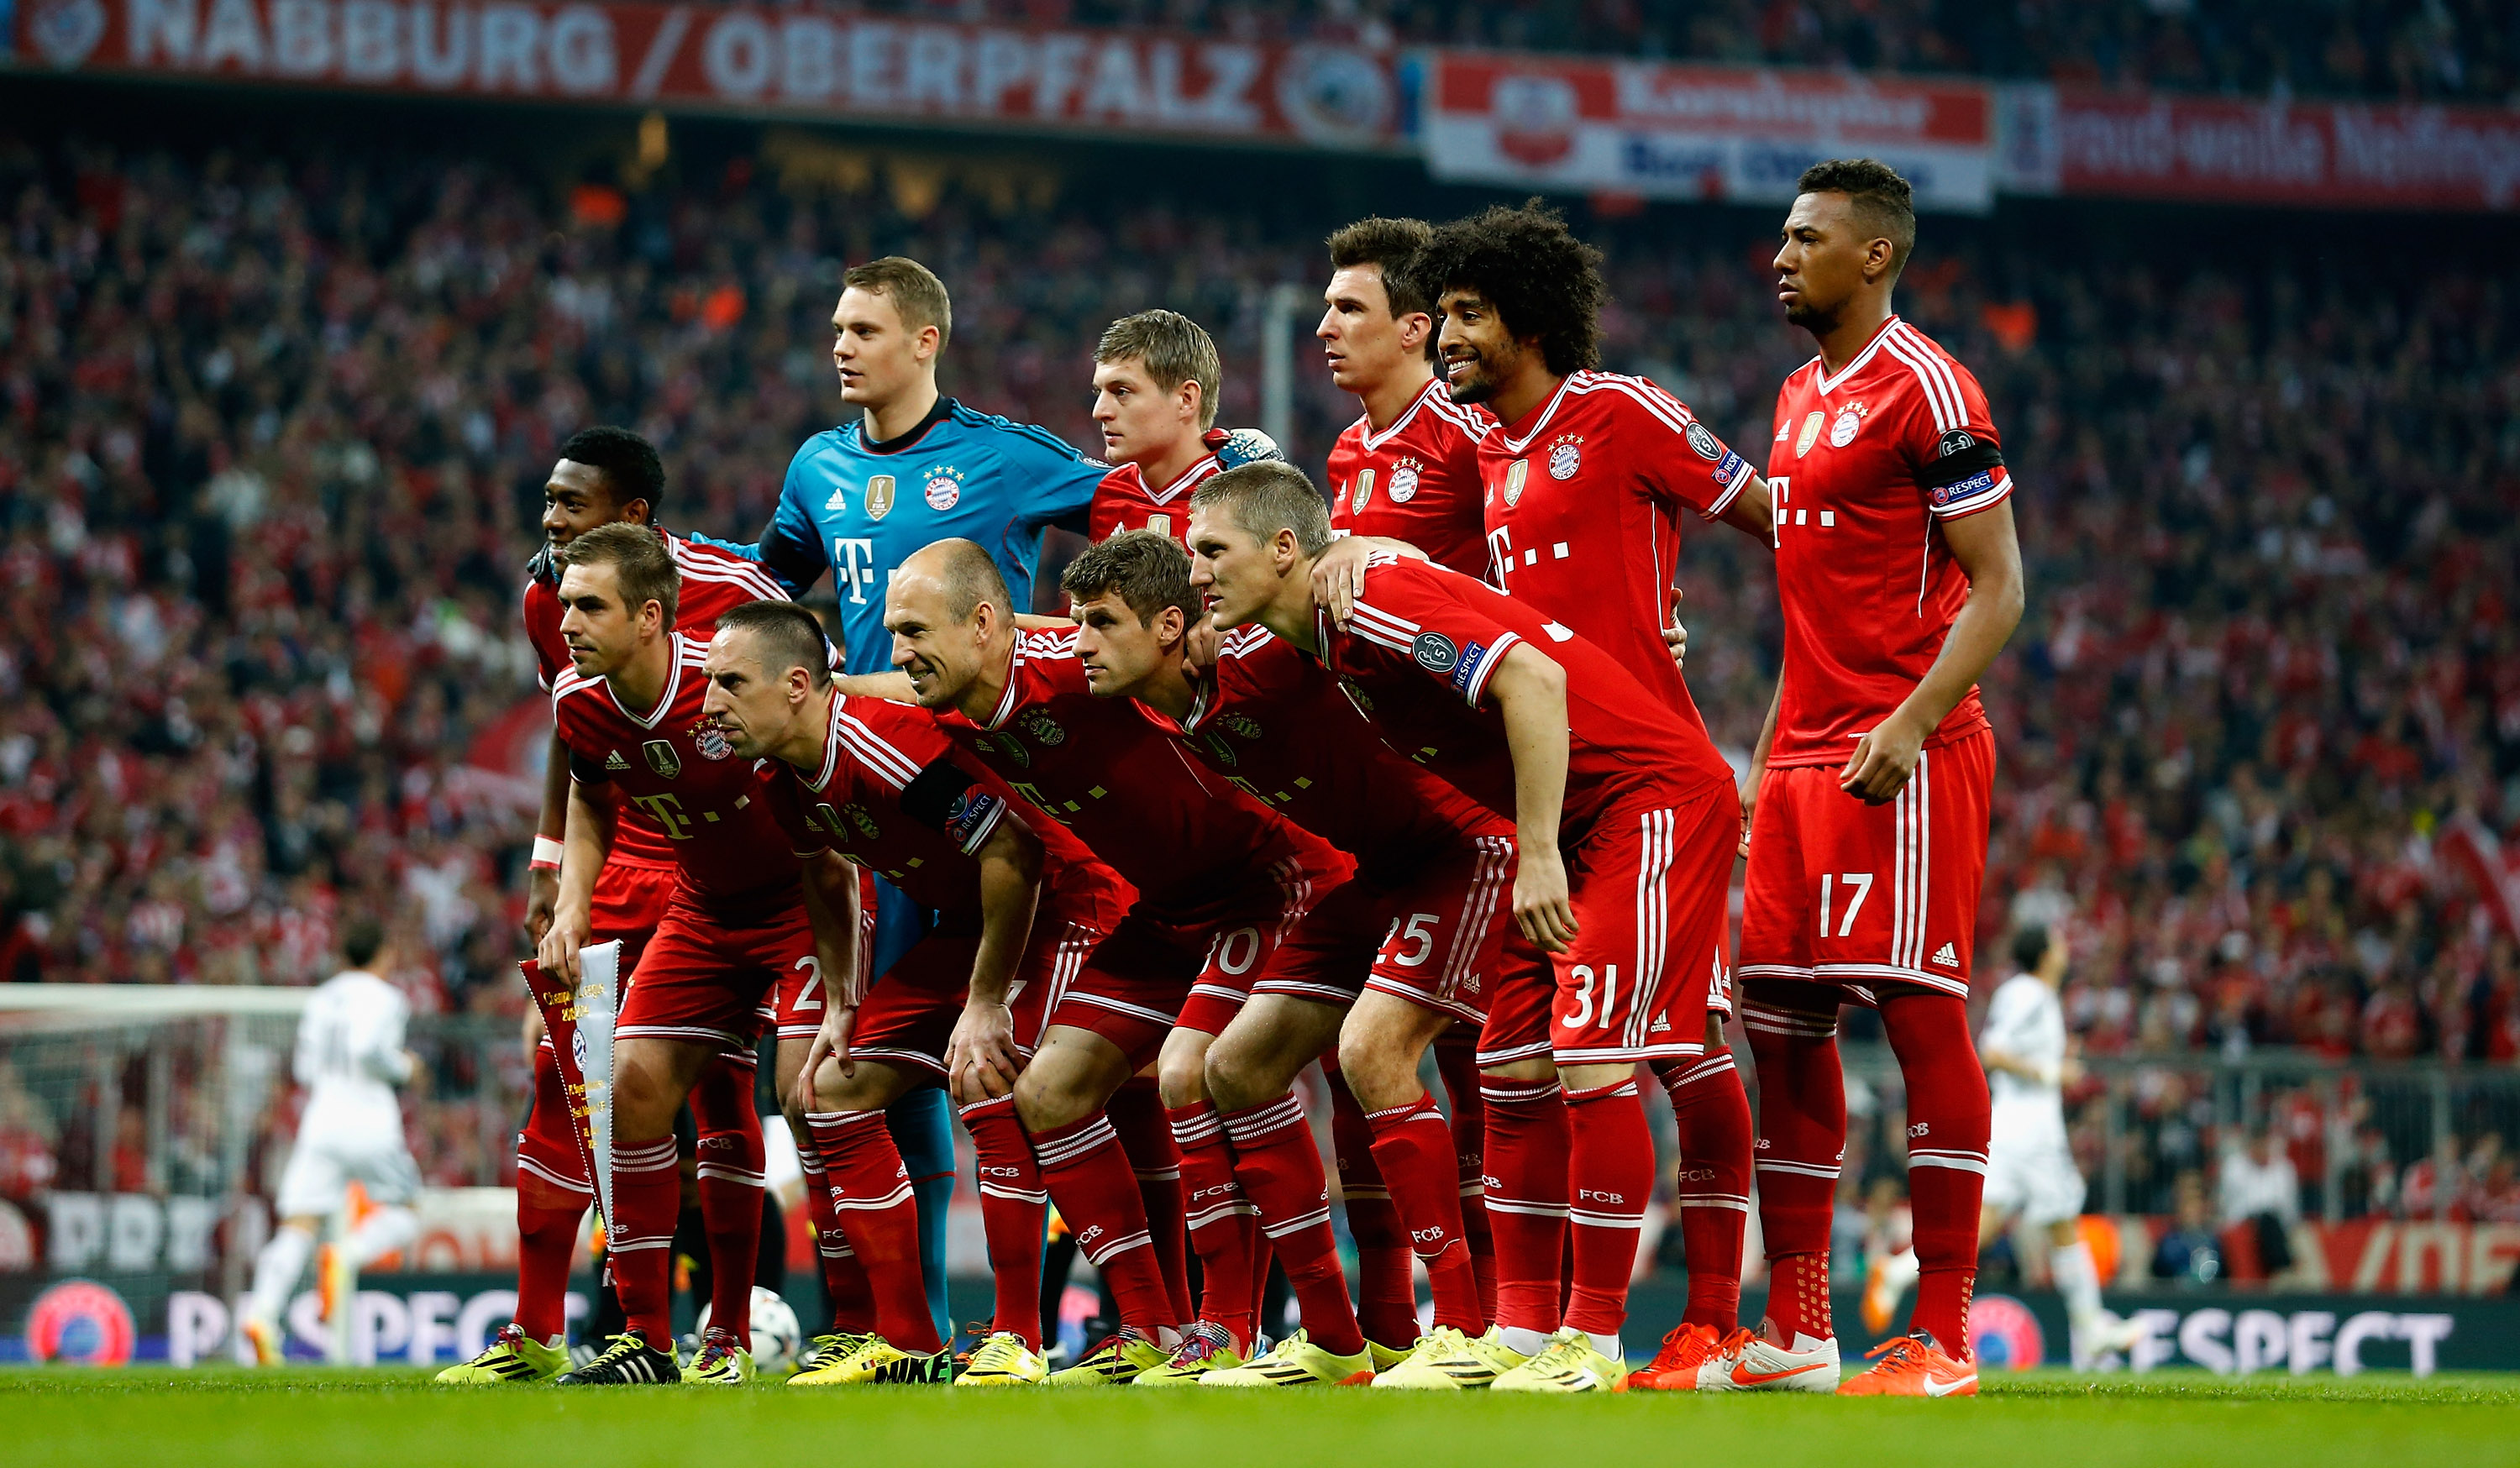 Real Madrid challenges Bayern Munich during the UEFA Champions League semi-finals.